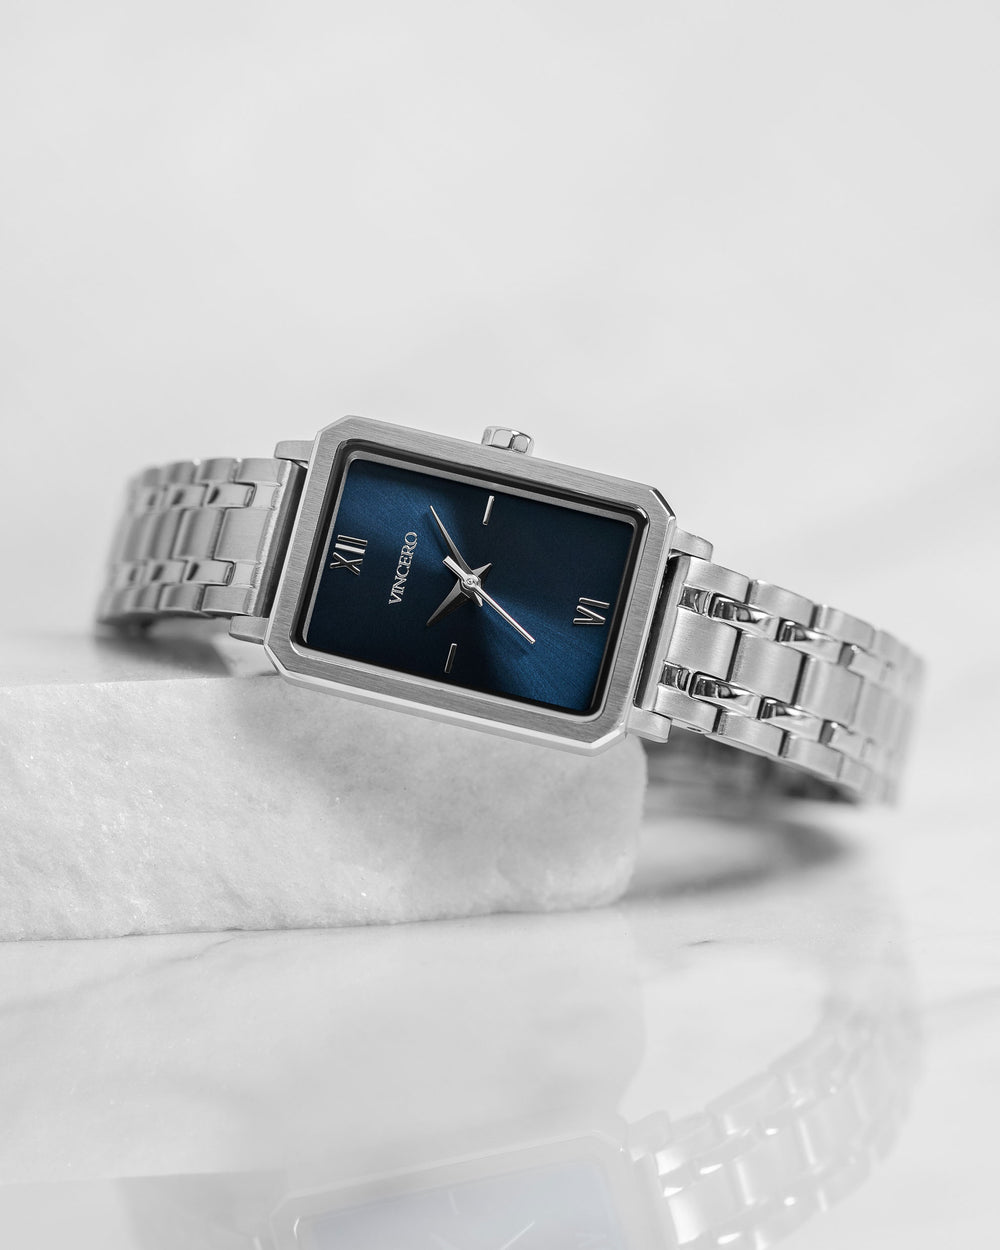 Ava Petite Brushed Silver 316L Stainless Steel Strap Blue Watch Face Brushed Silver Case Clasp Silver Accents